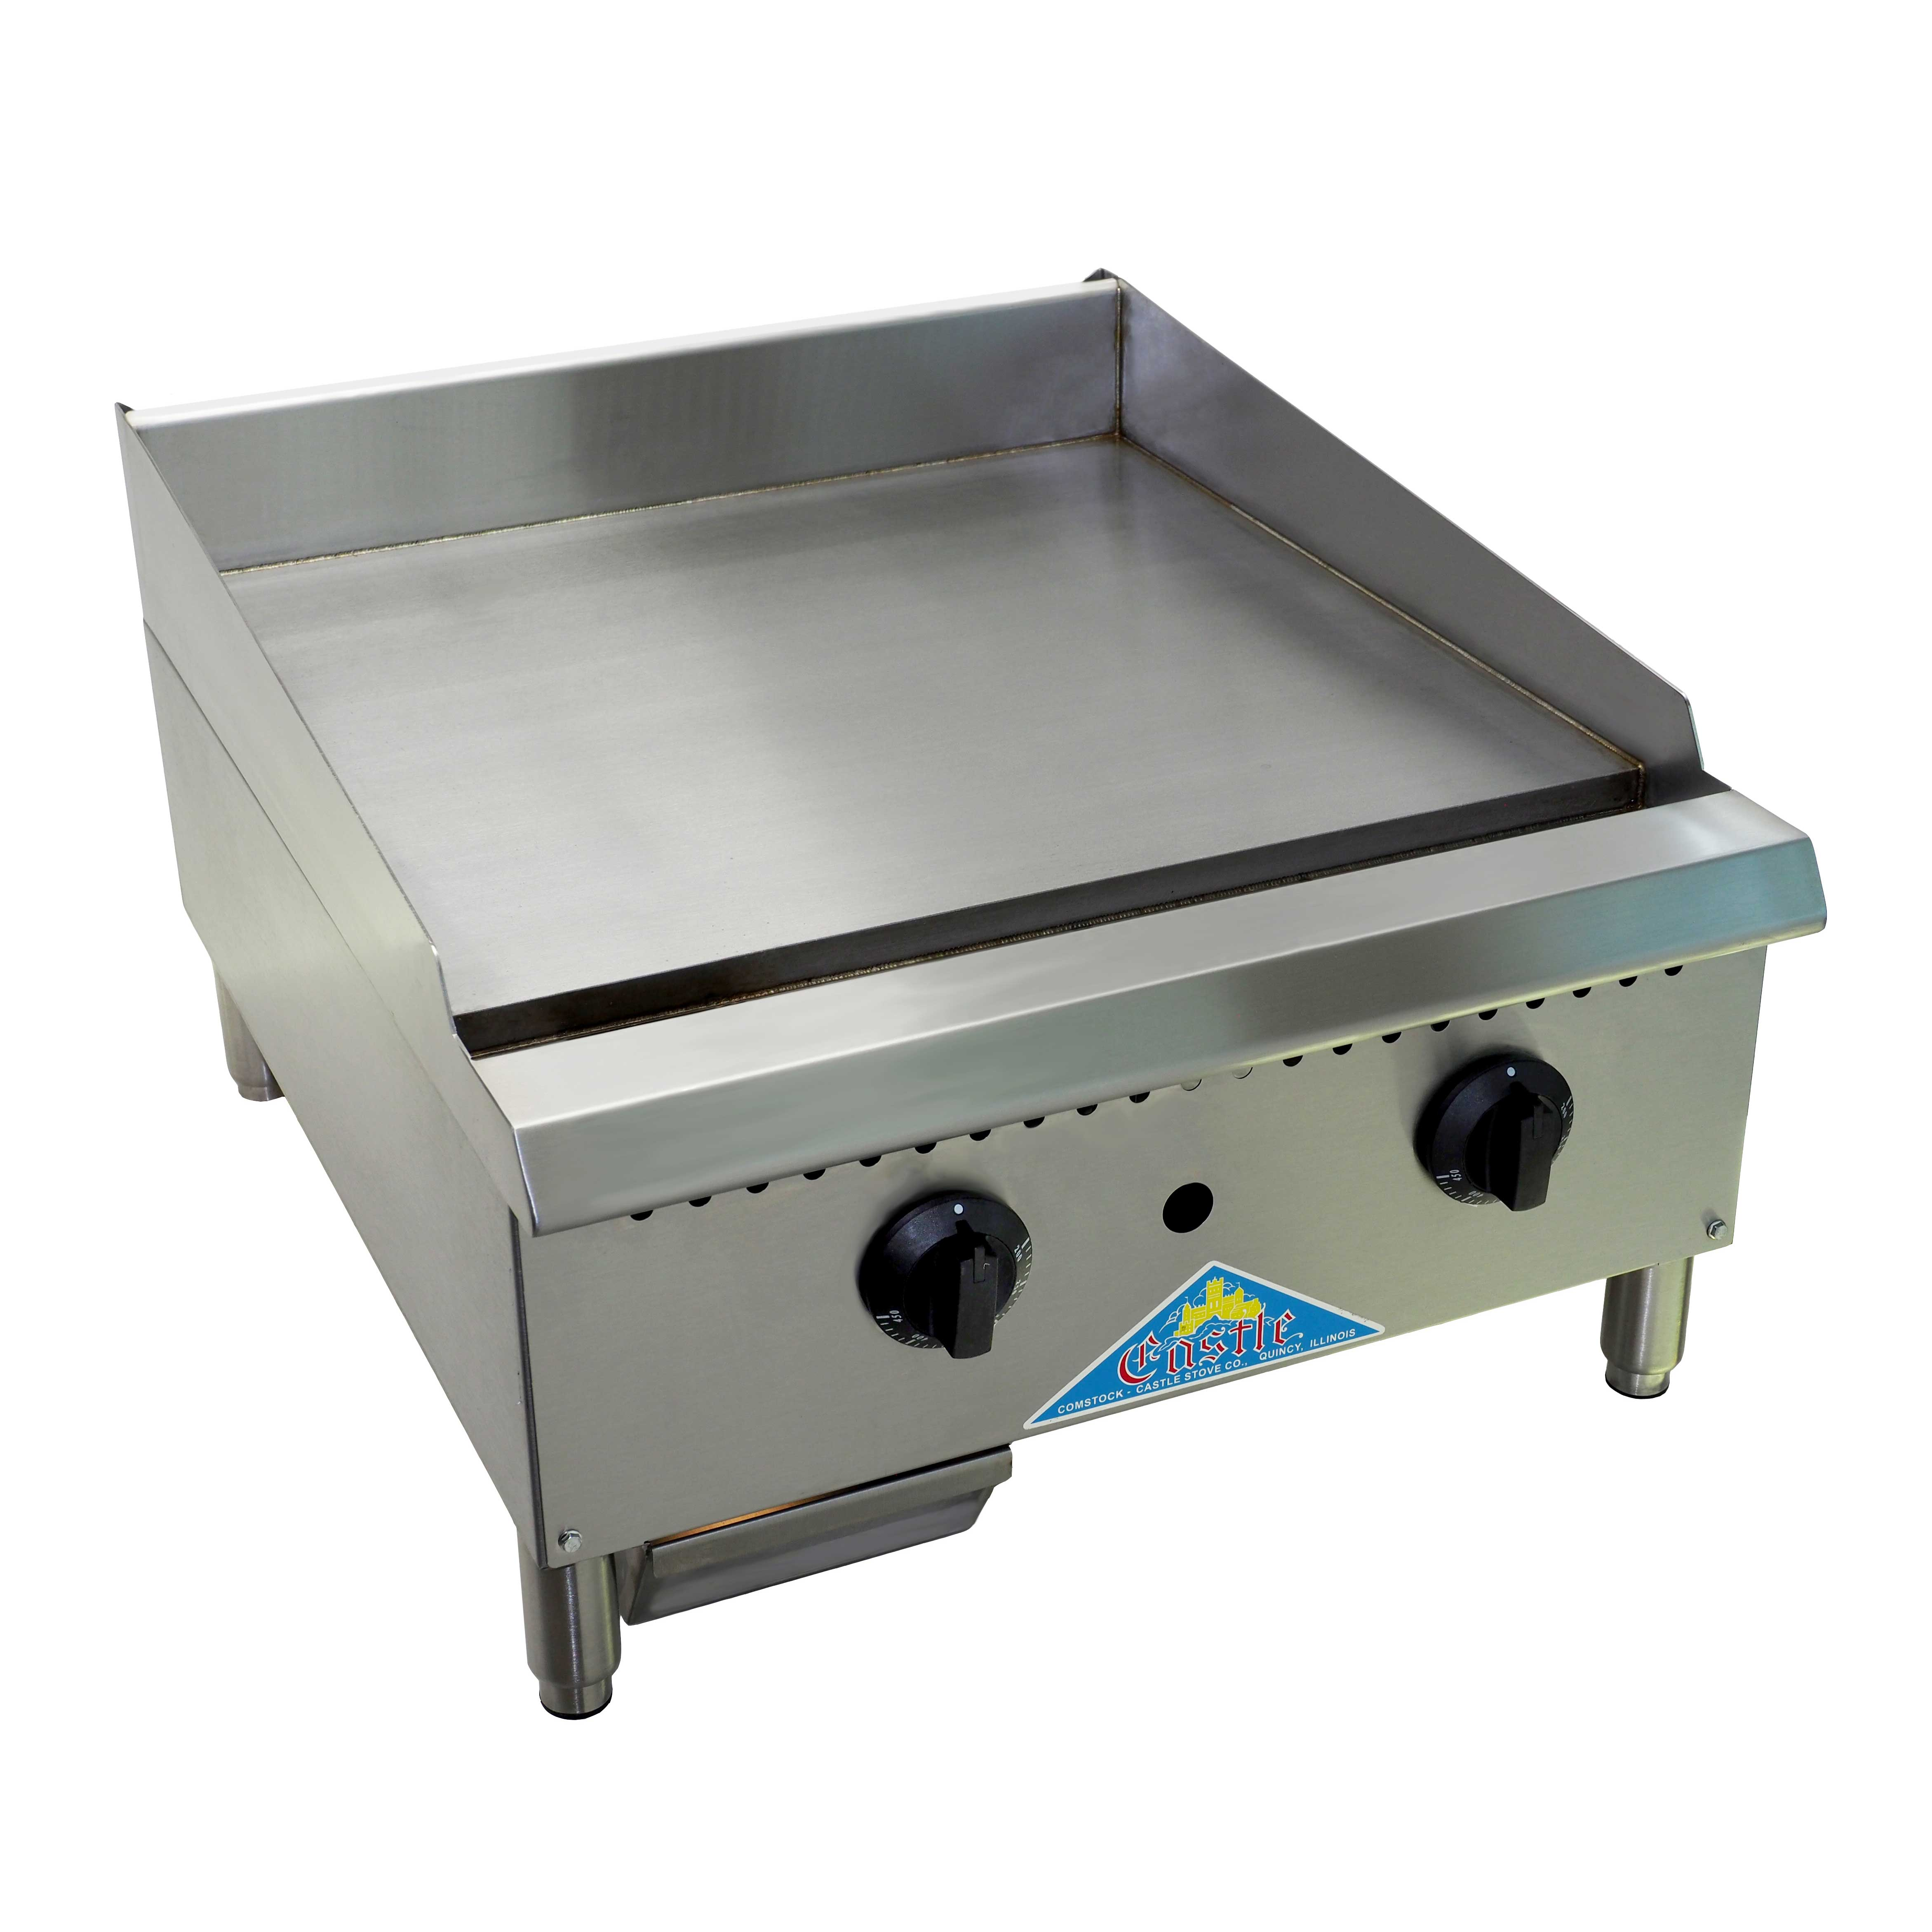 Comstock-Castle CCHG-36T-1 griddle, gas, countertop